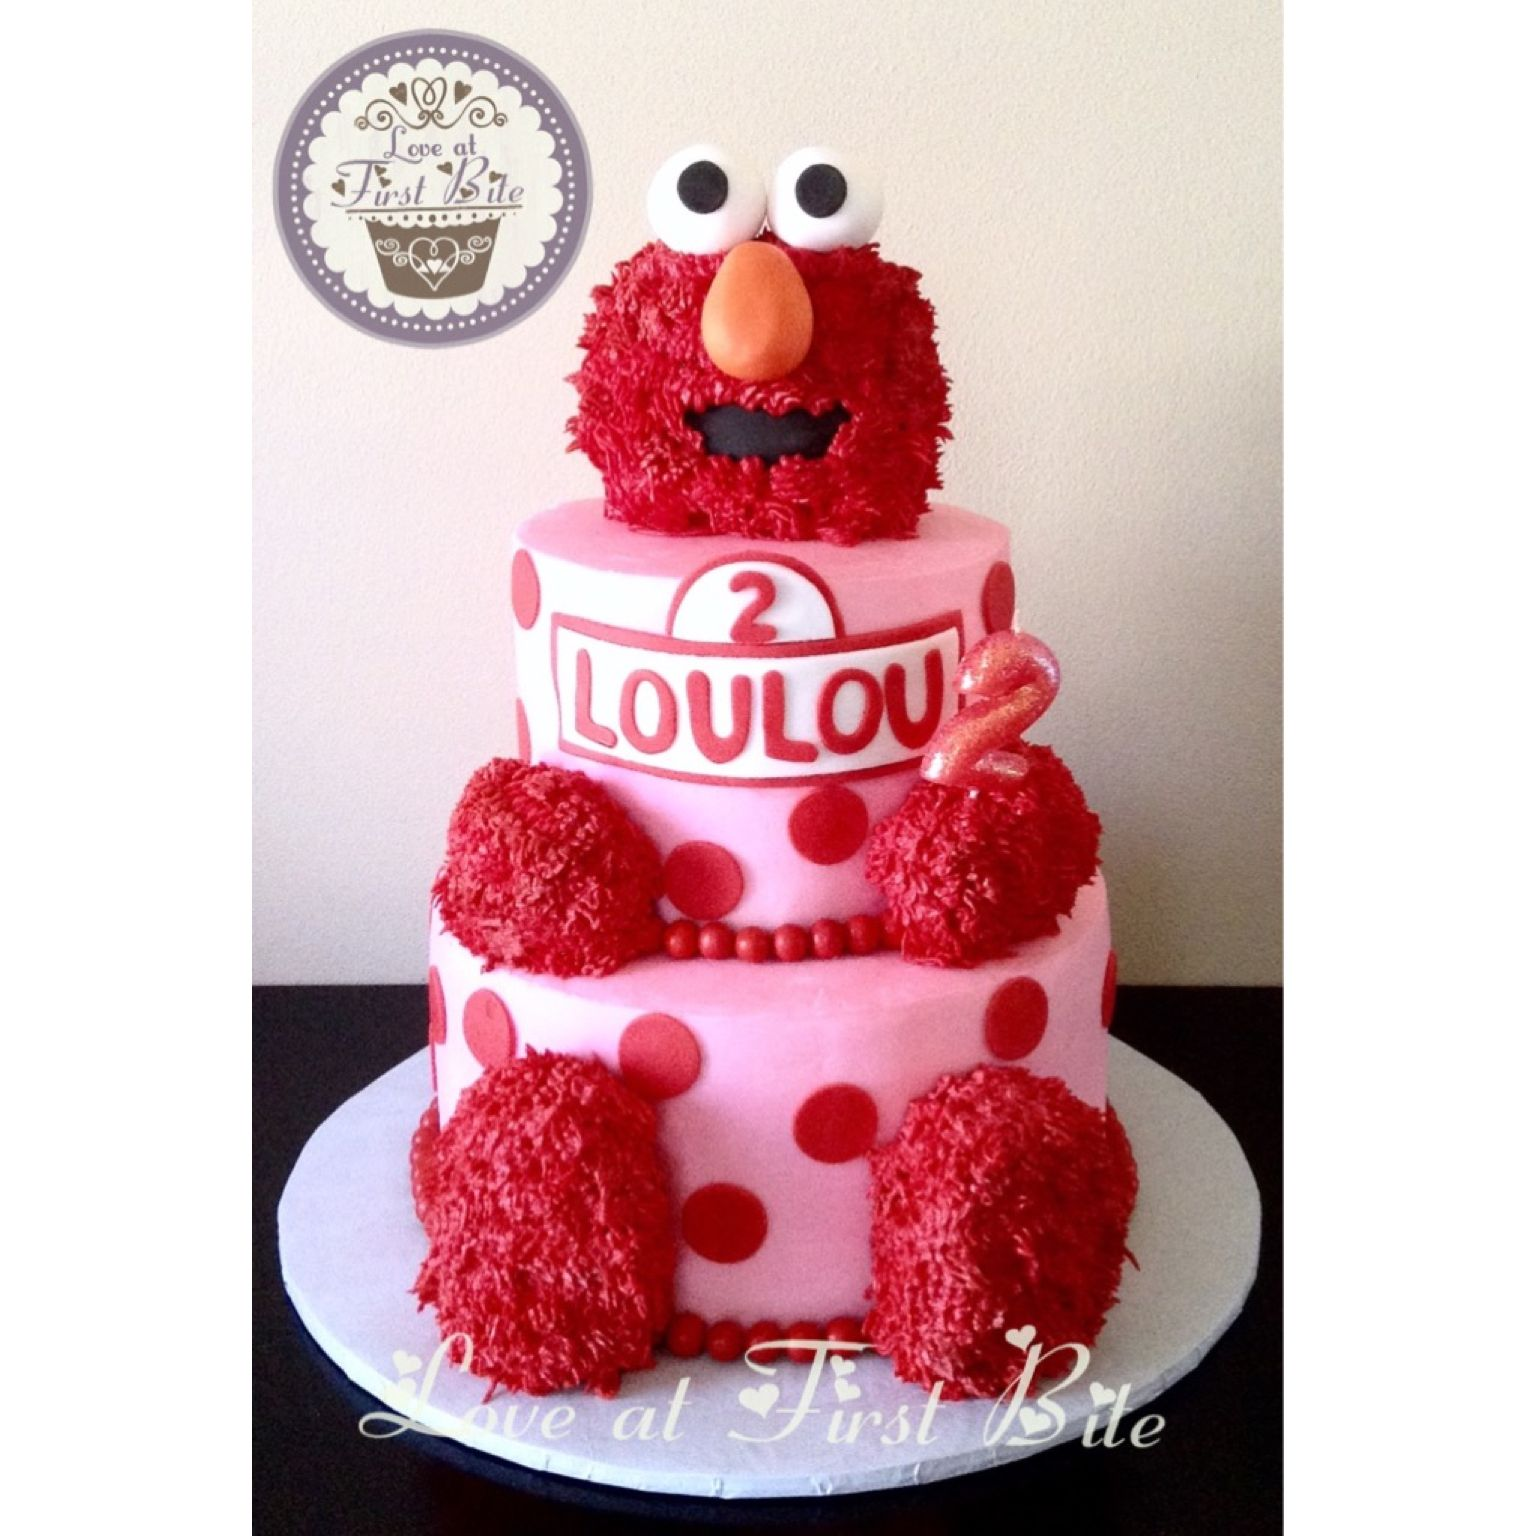 Cute Elmo Cake By Love At First Bite In Nashville TN